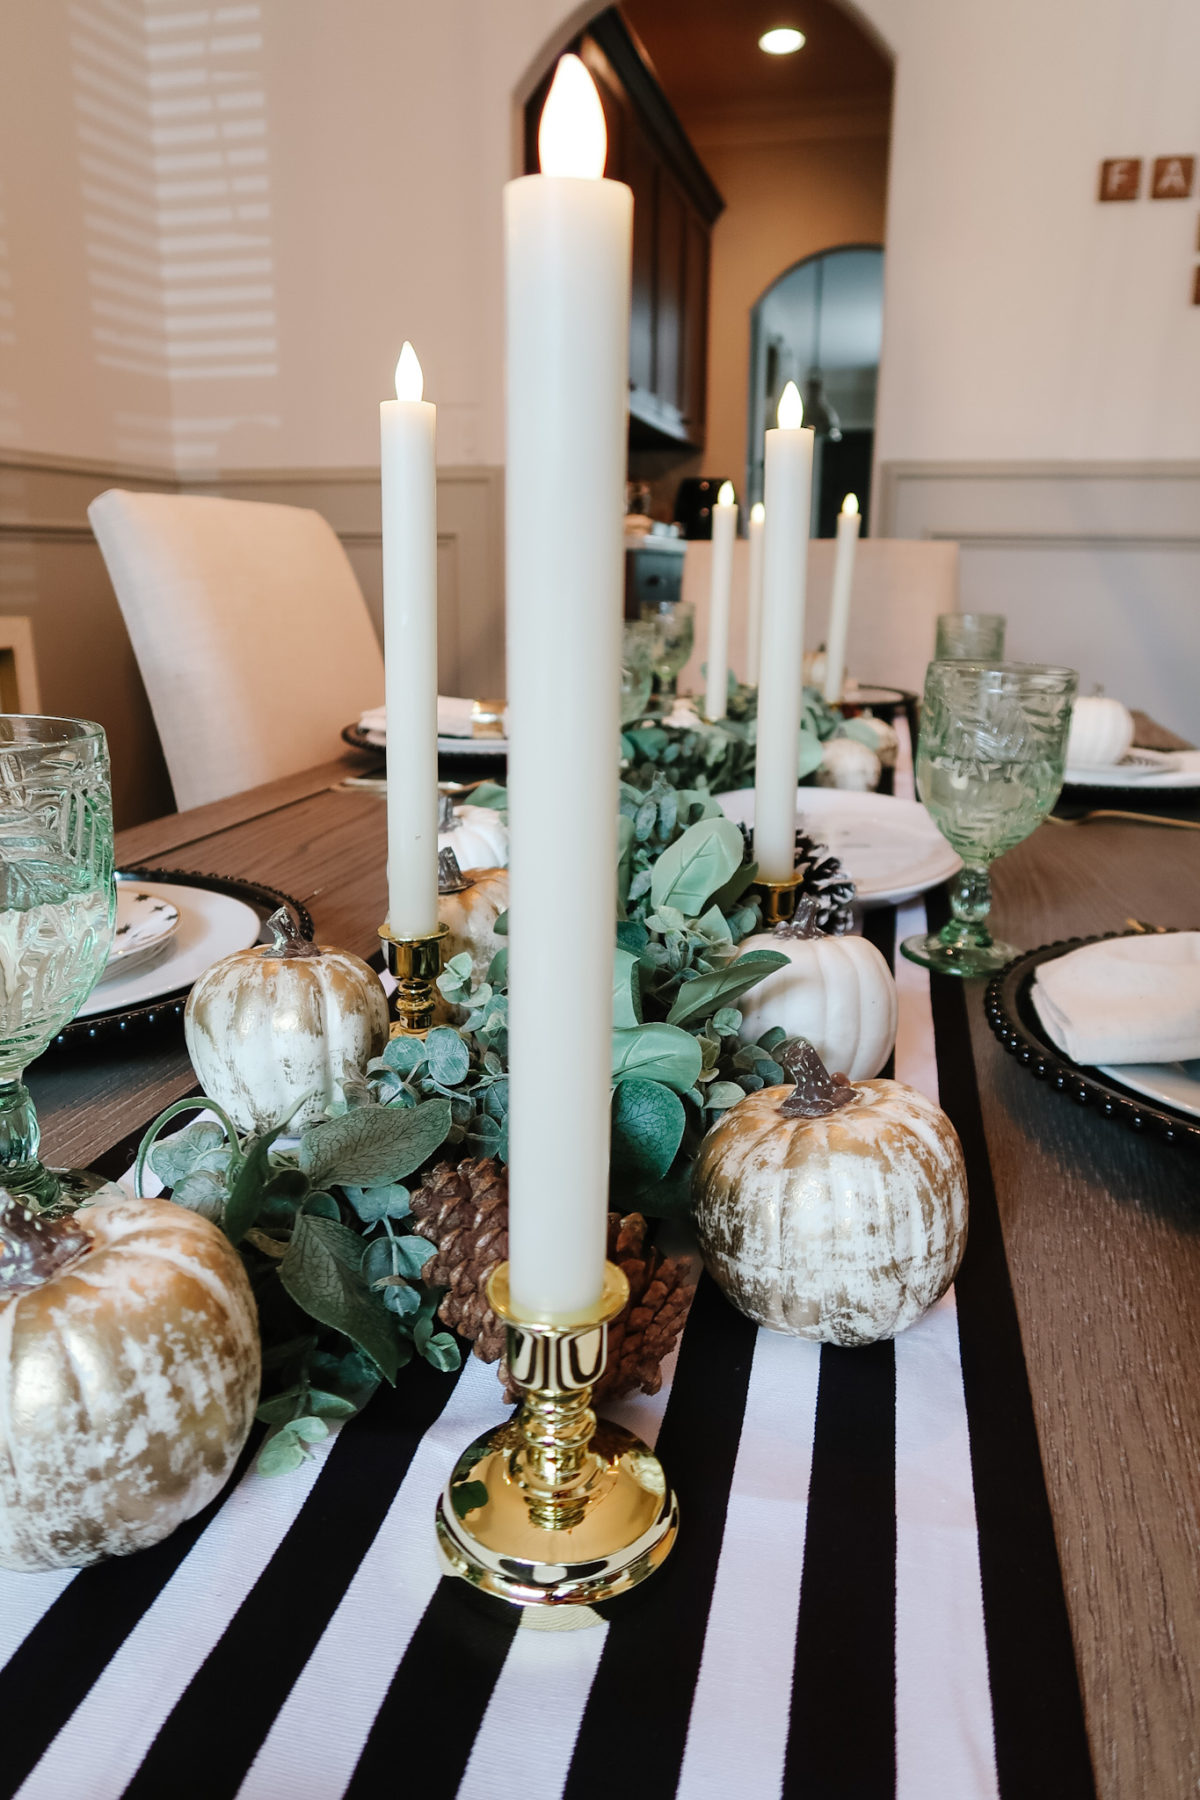 Thanksgiving Tablescapes, Modern Black and White with Gold Accents